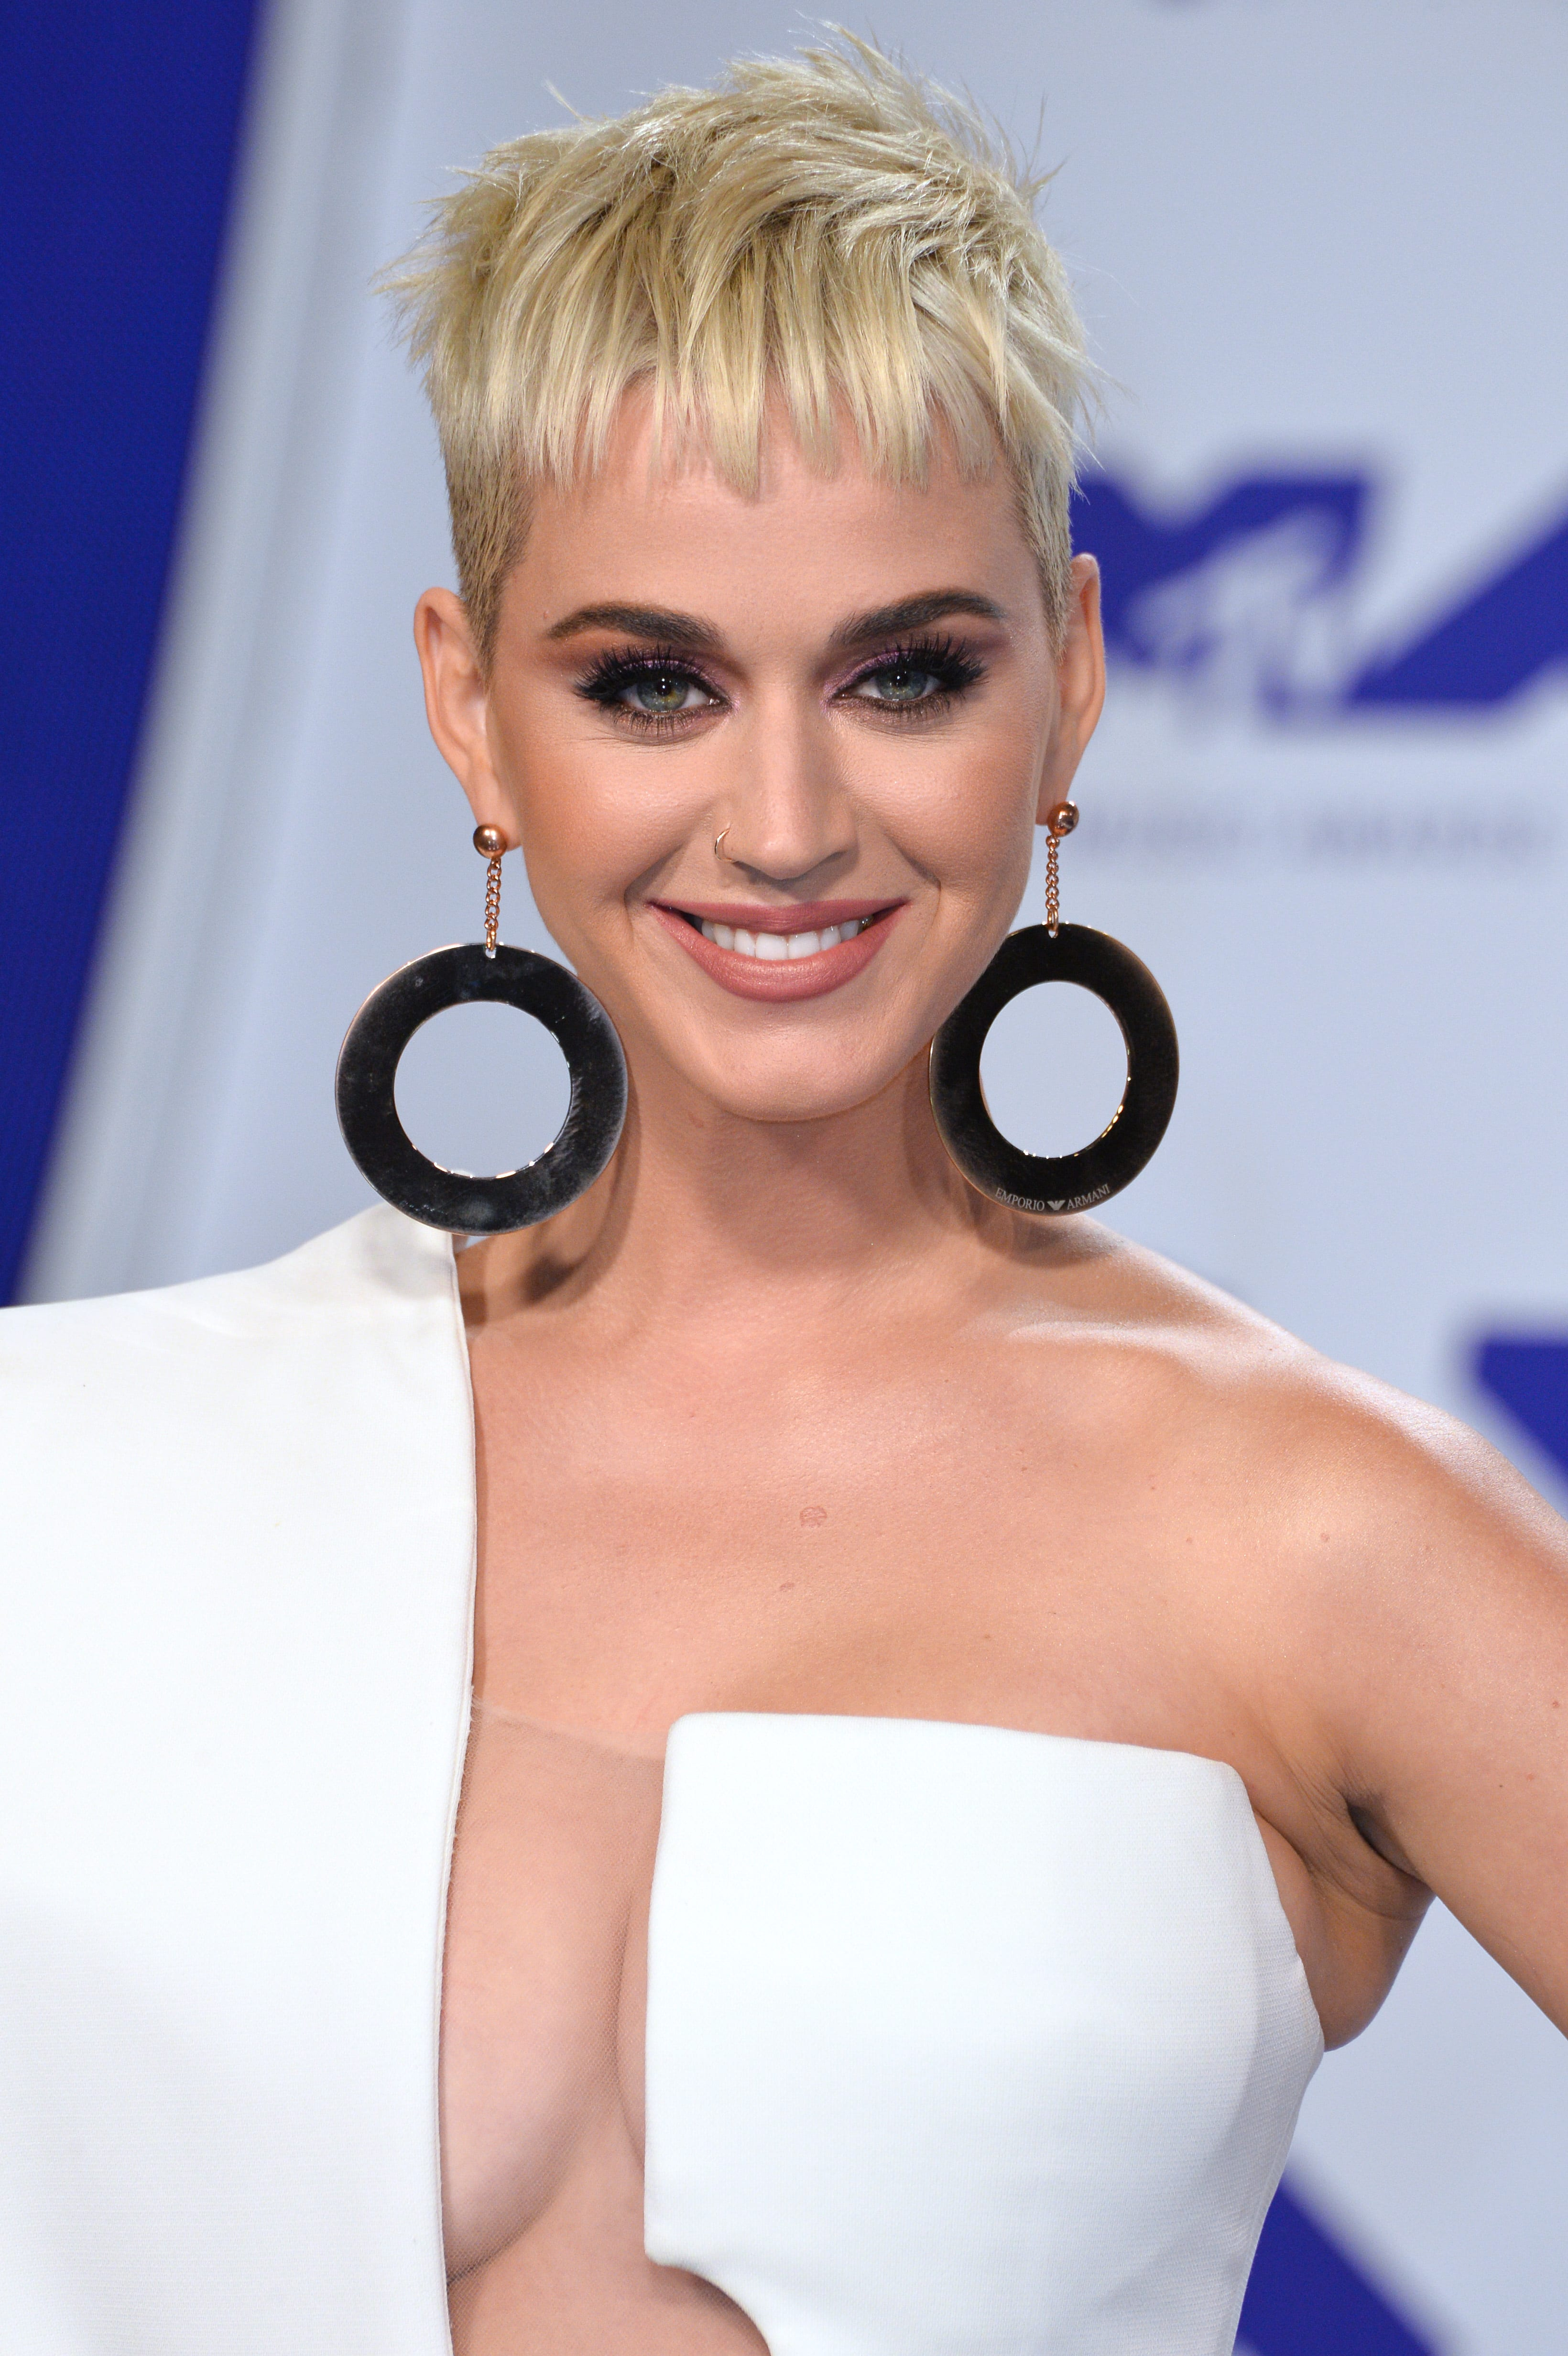 Katy Perry's Textured Pixie with Baby Bangs